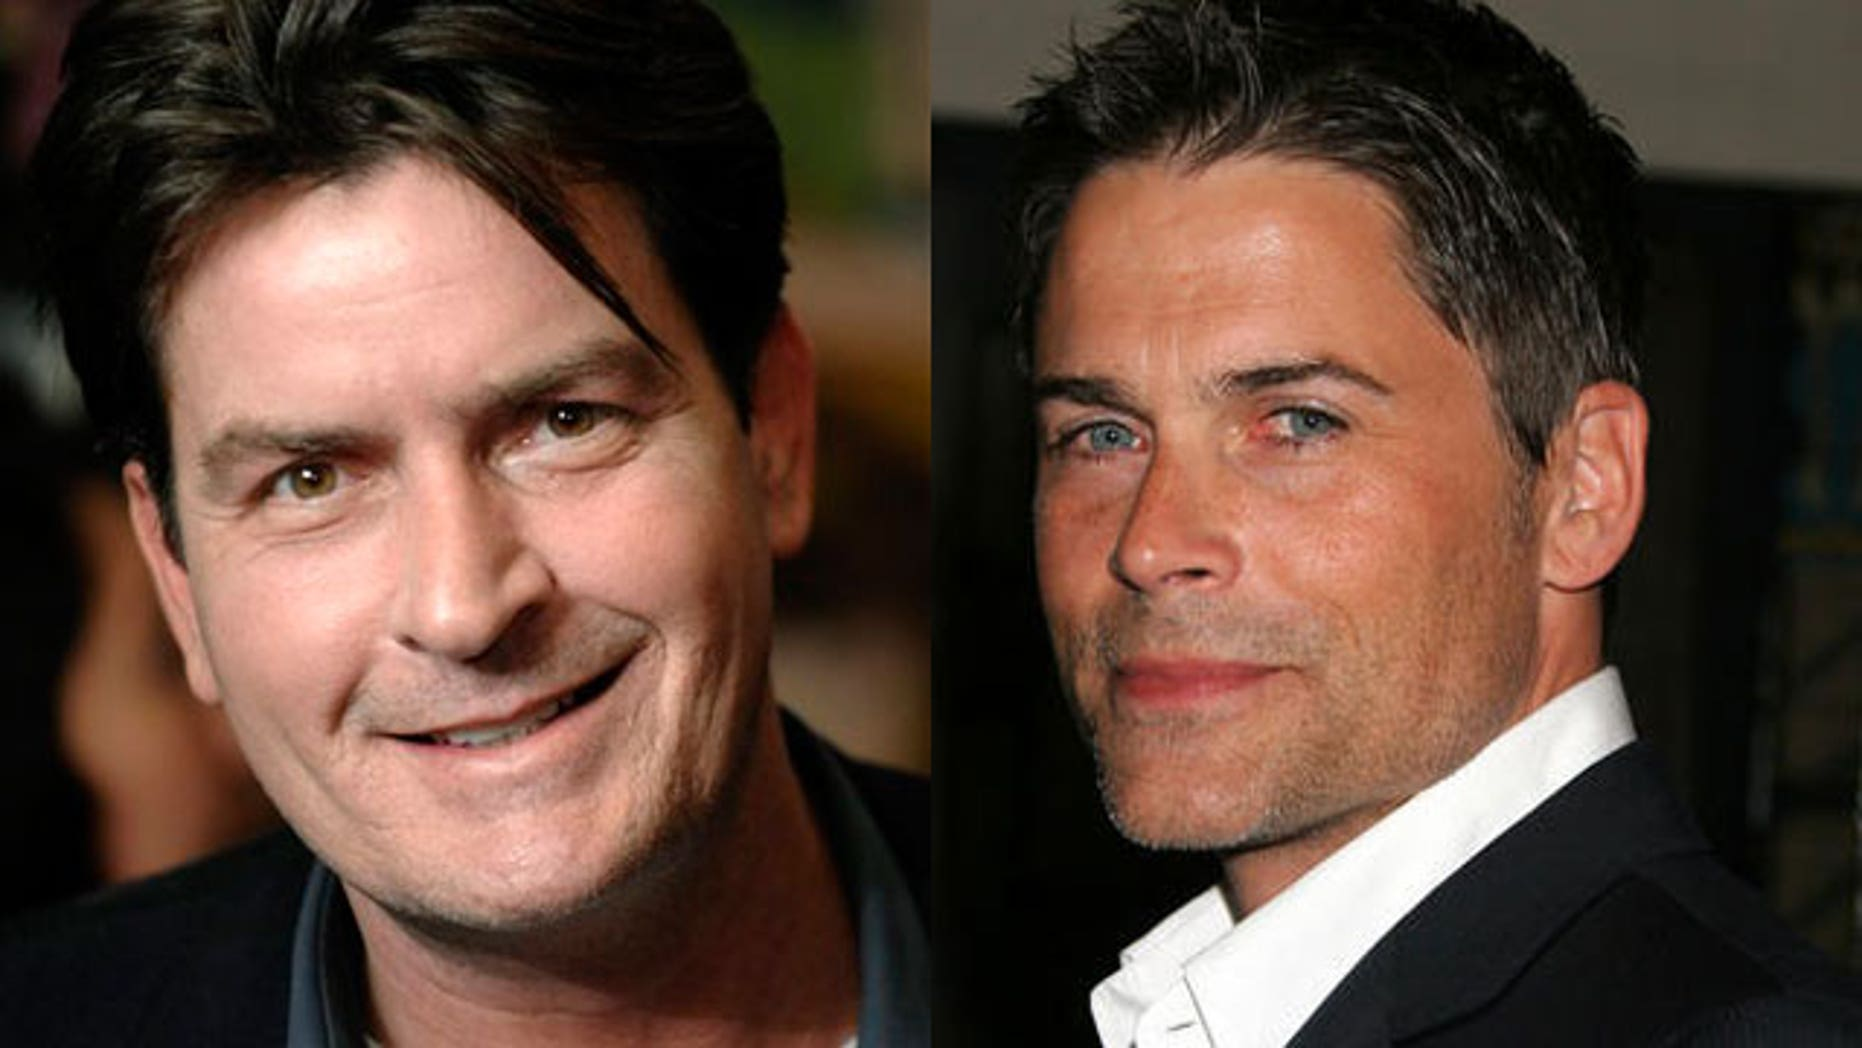 Charlie Sheen (L) could be replaced with Rob Lowe on 'Two and a Half Men,' according to a report. (AP)